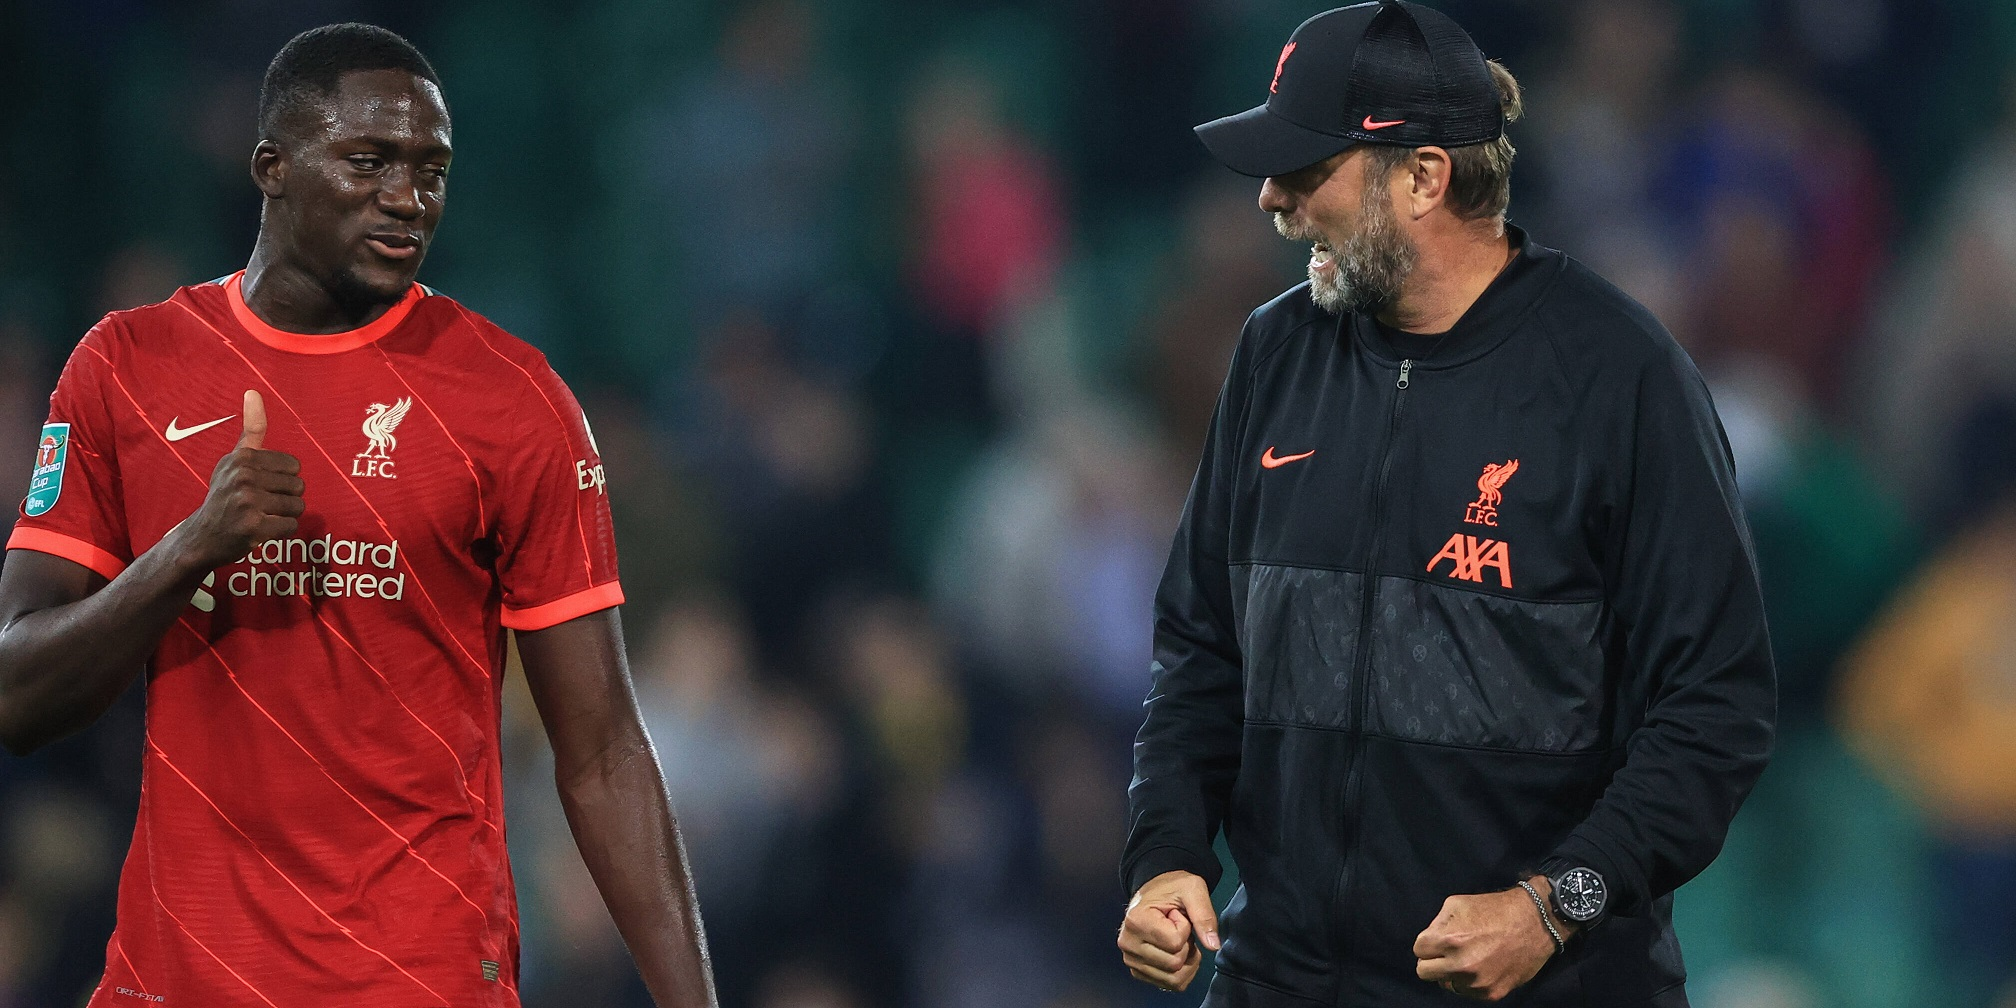 Klopp could risk unsettling one Liverpool star if he doesn't rest Van Dijk, suggests injury expert